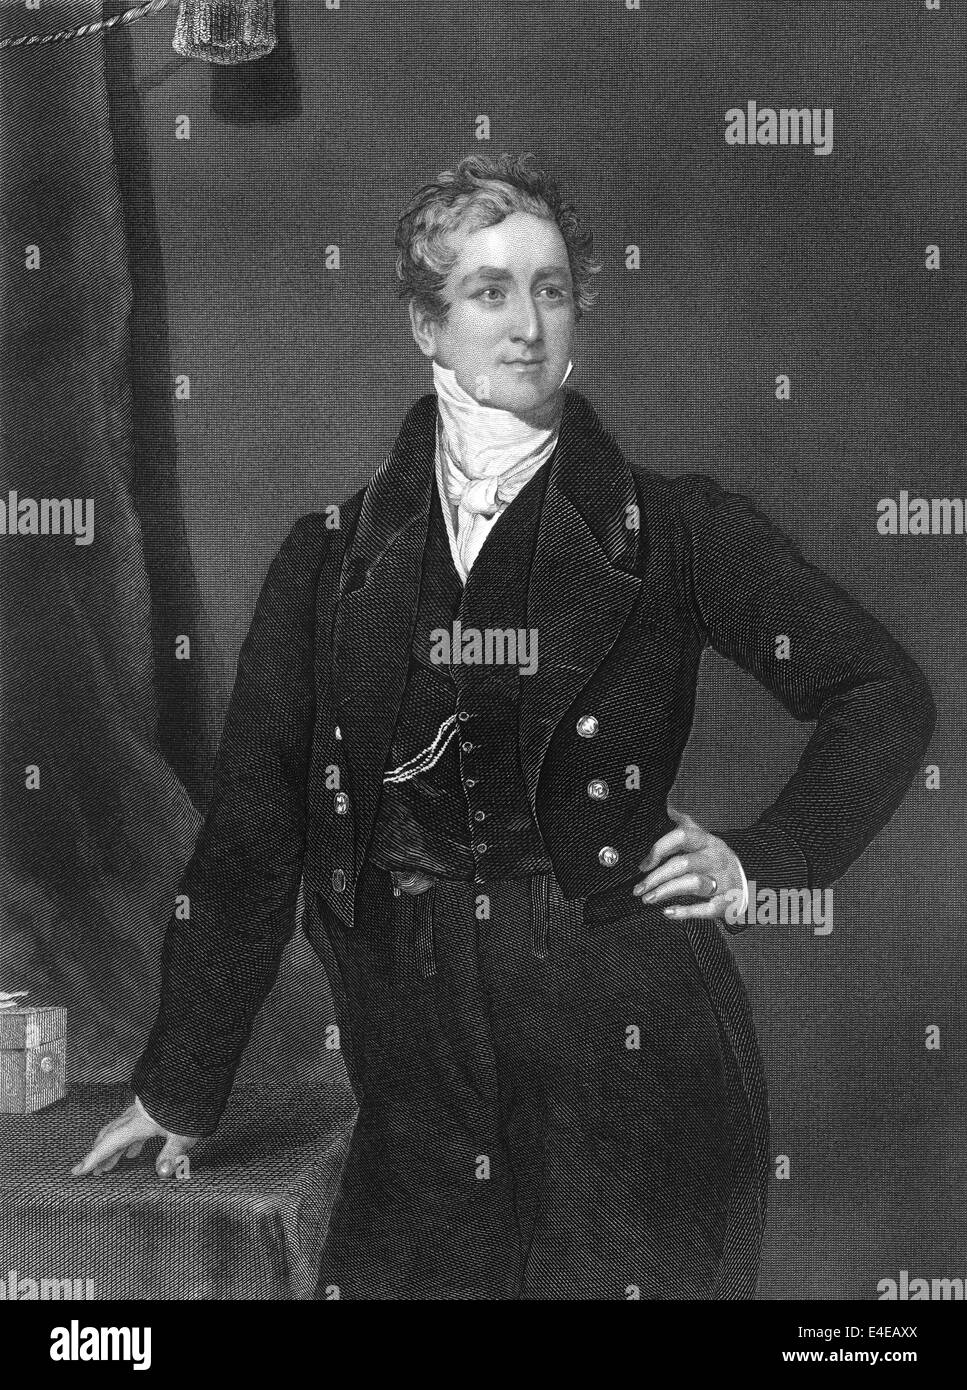 Sir Robert Peel, 1788 - 1850, 2nd Baronet Peel of Clanfield, a British politician, prime minister - Stock Image